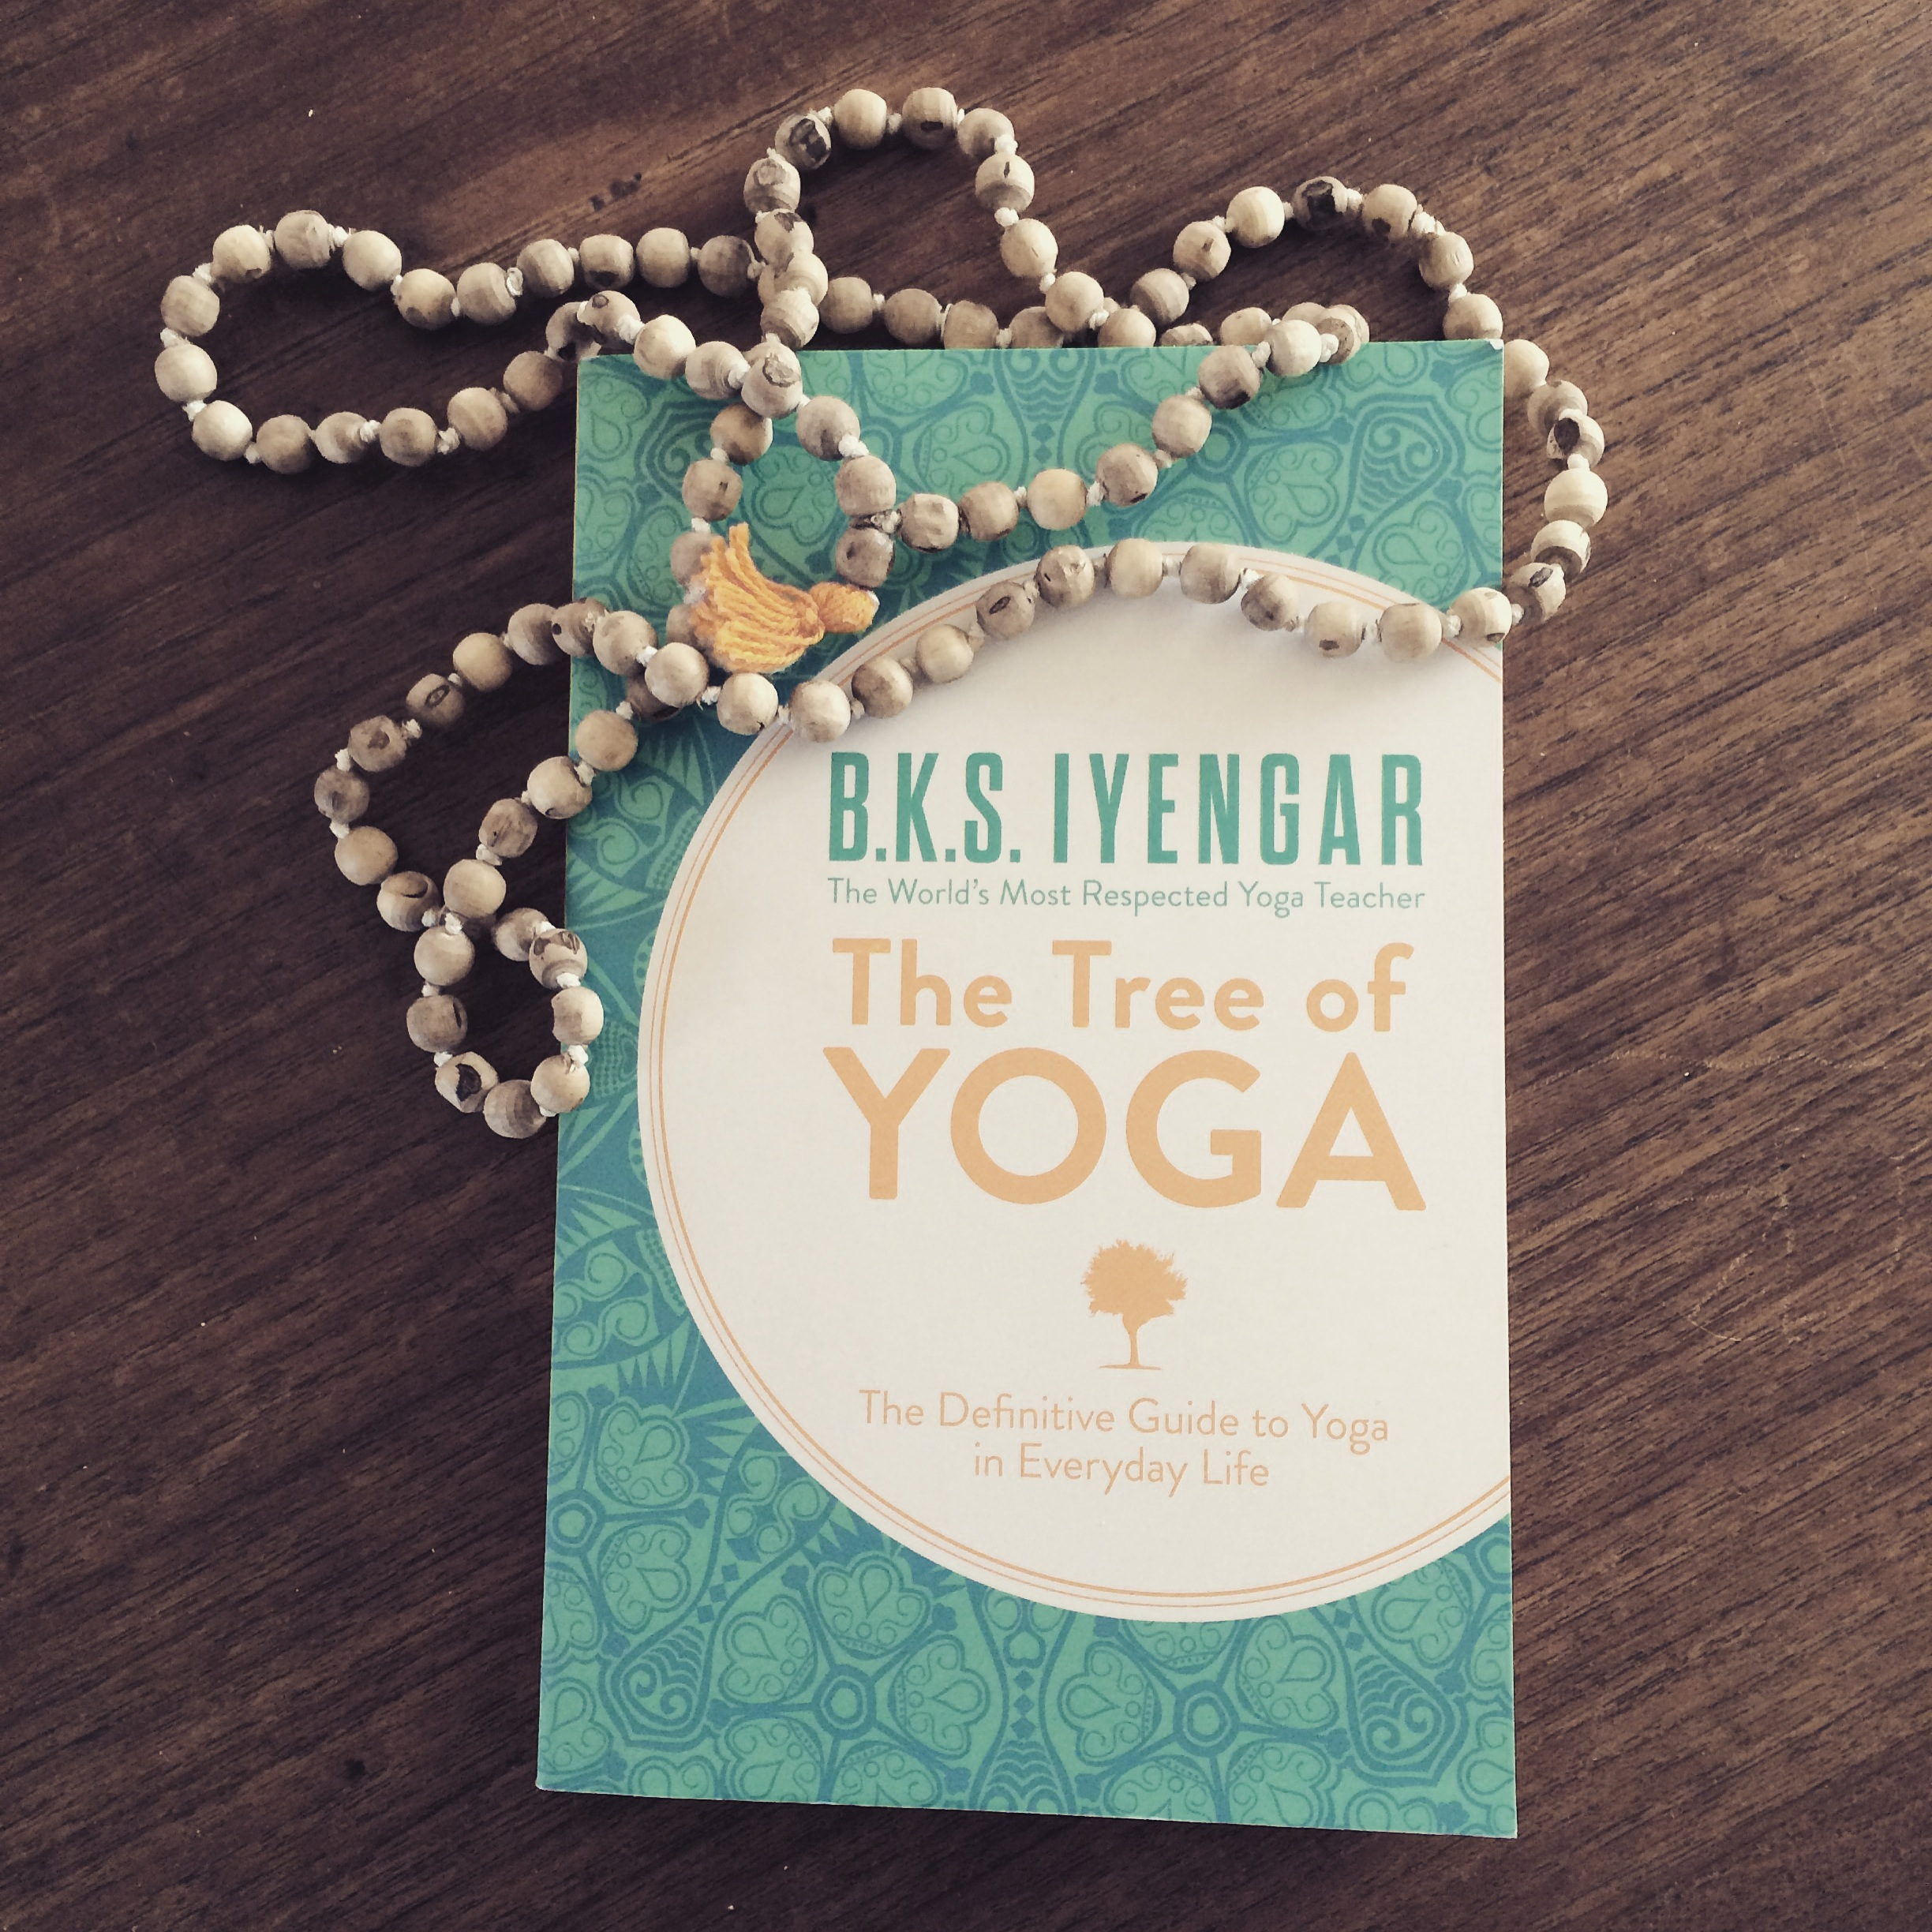 Mala beads + a solid read